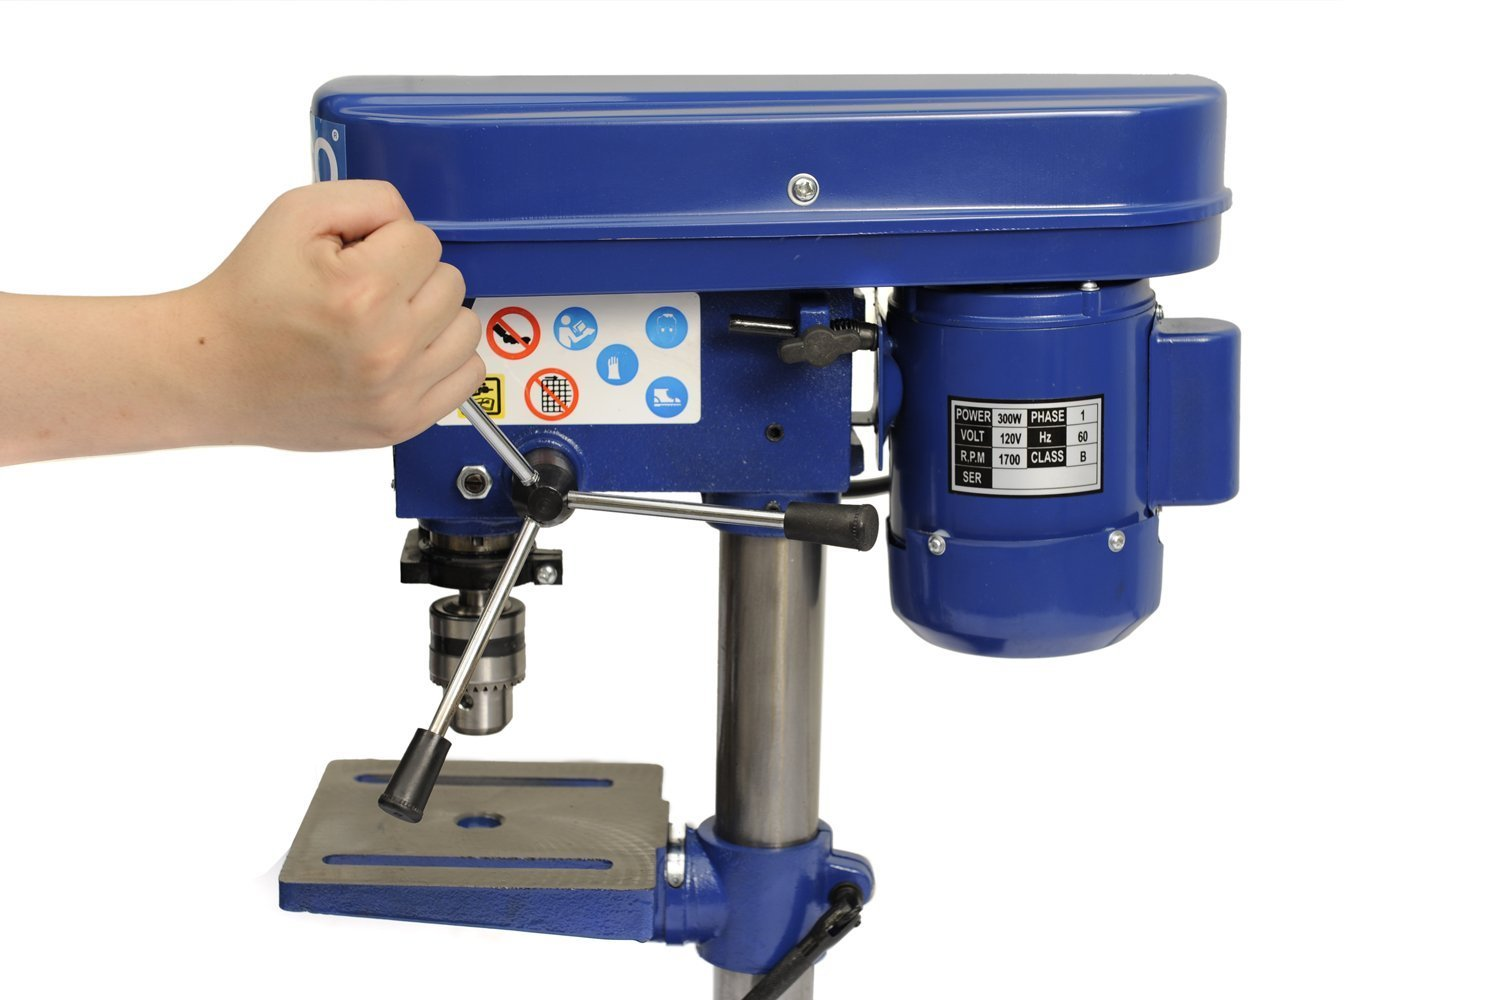 HICO Bench Top Drill Press - 8 Inch Adjustable Height, 5 Speed Motor, Cast Iron Table DP4113 by HICO (Image #5)